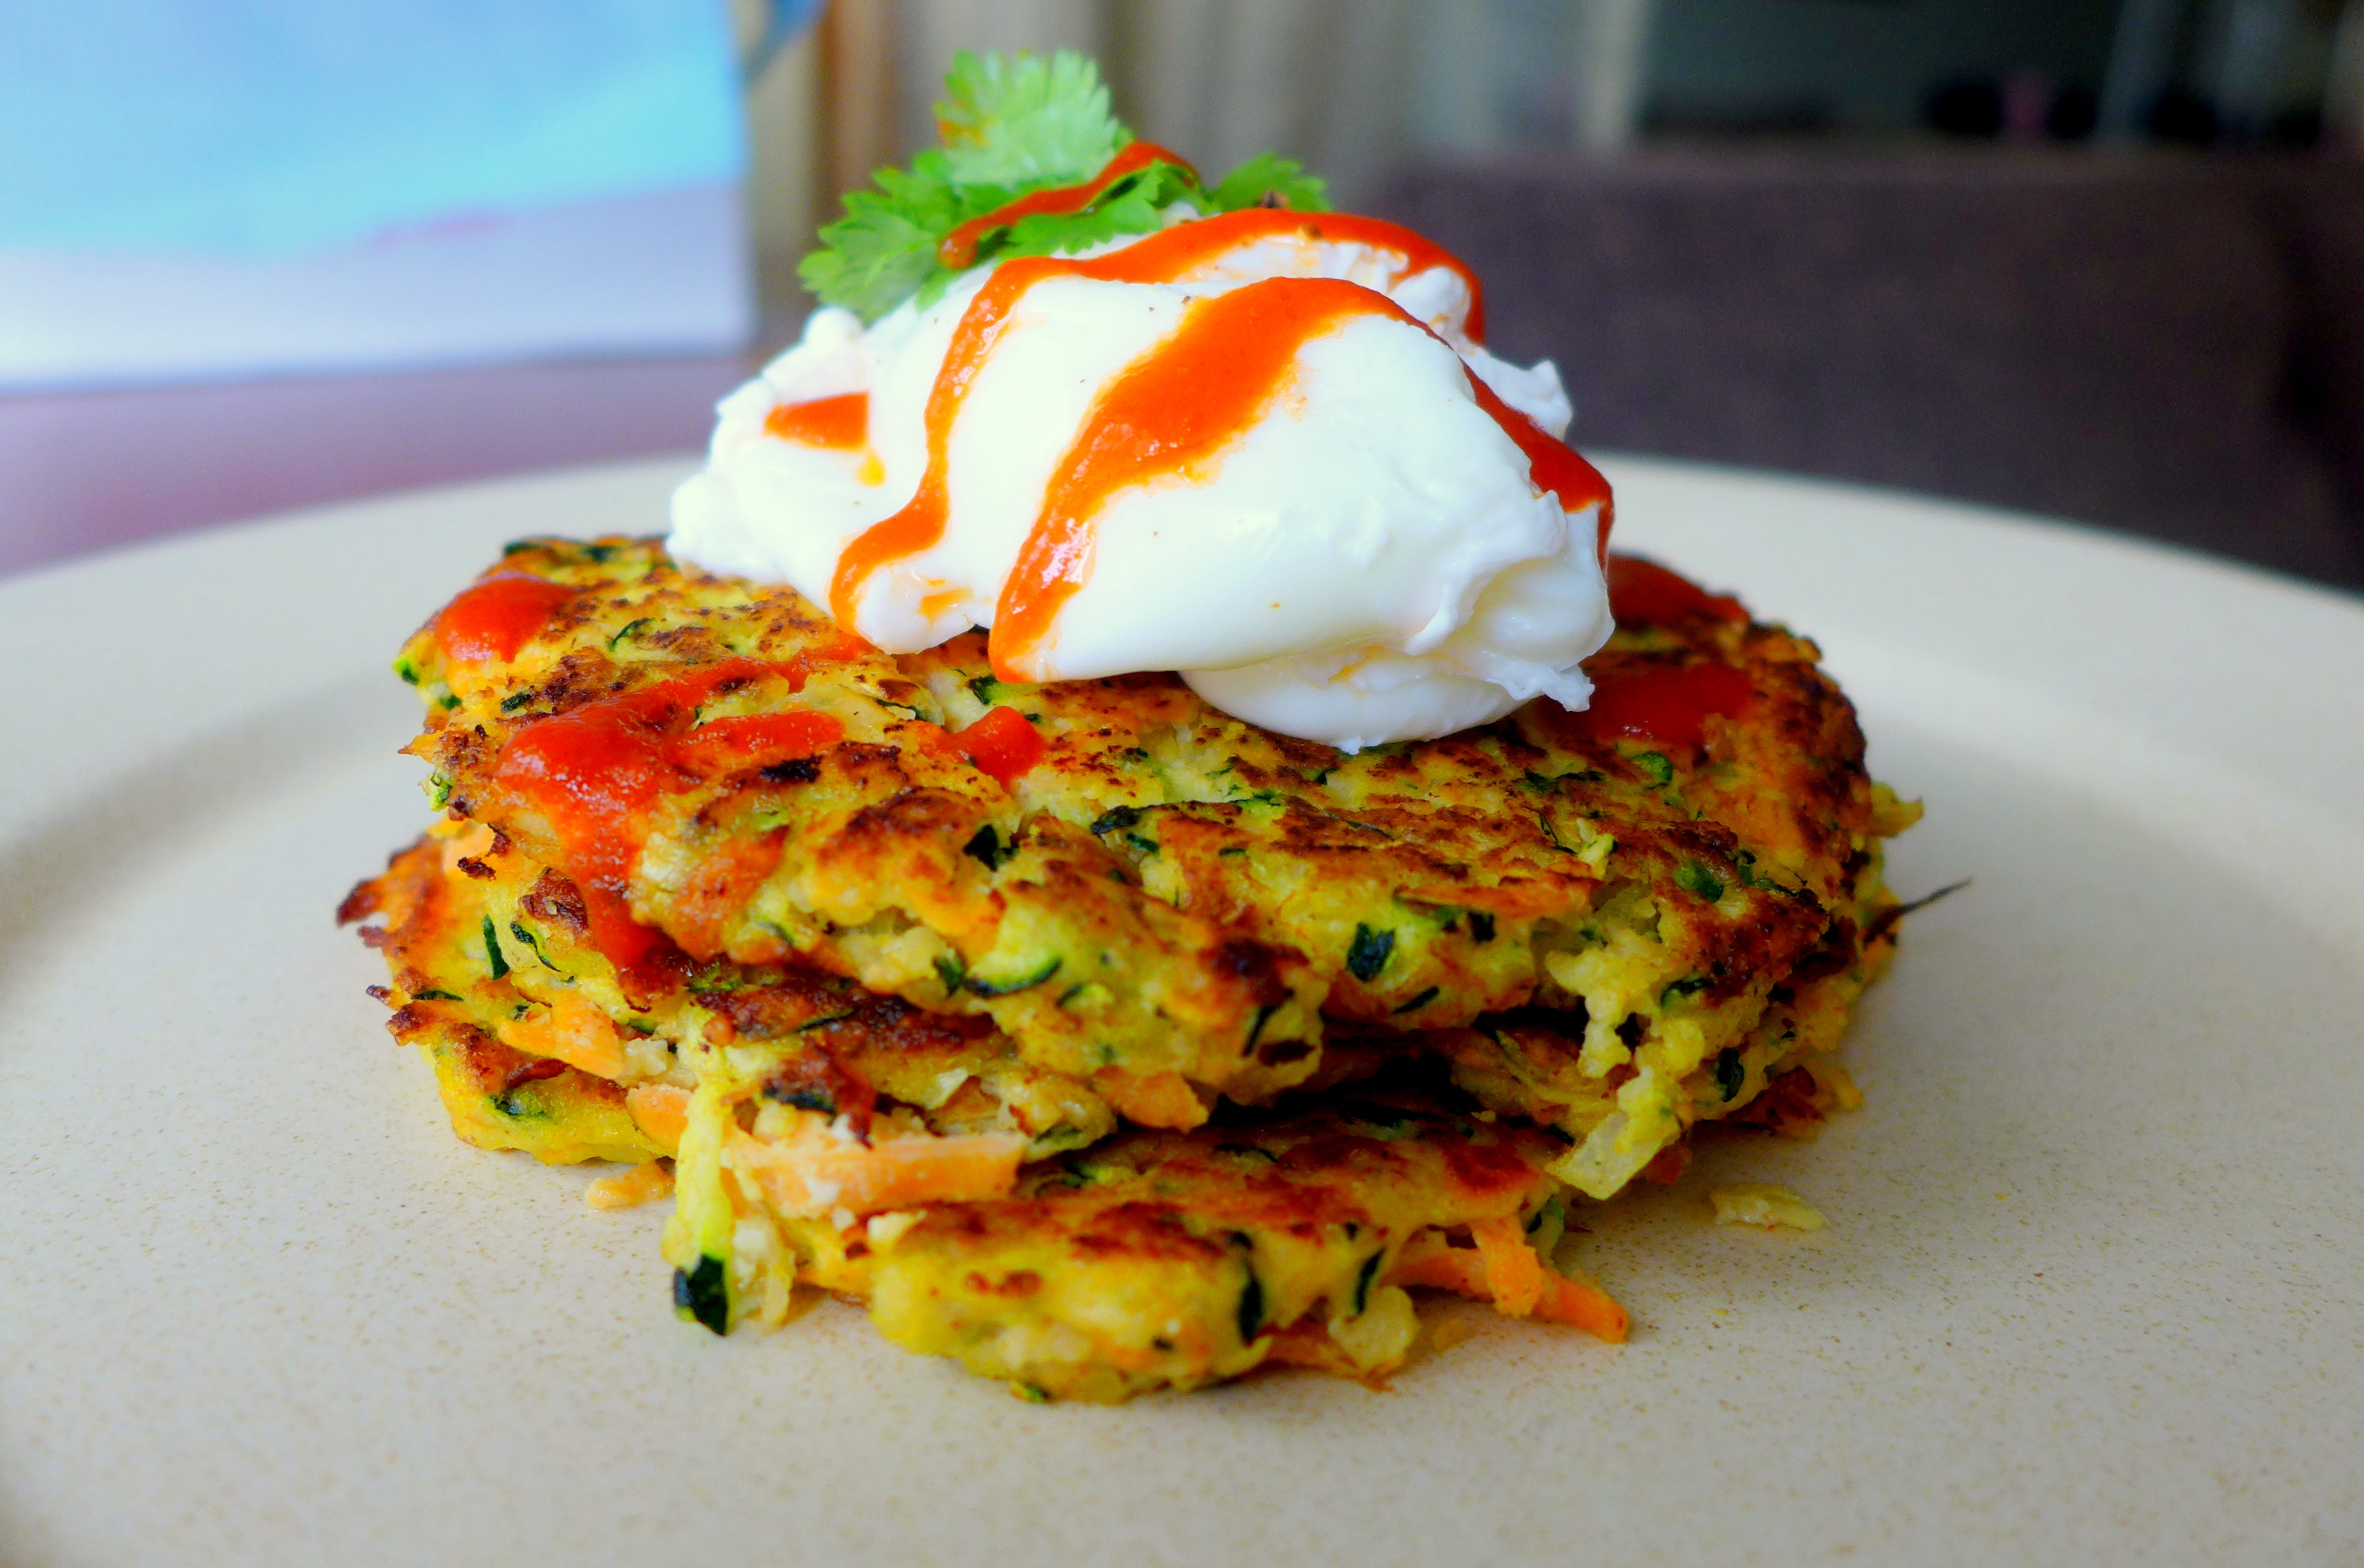 Zucchini Fritters Paleo  Paleo Zucchini and Carrot Fritters – Kelly Siew Cooks